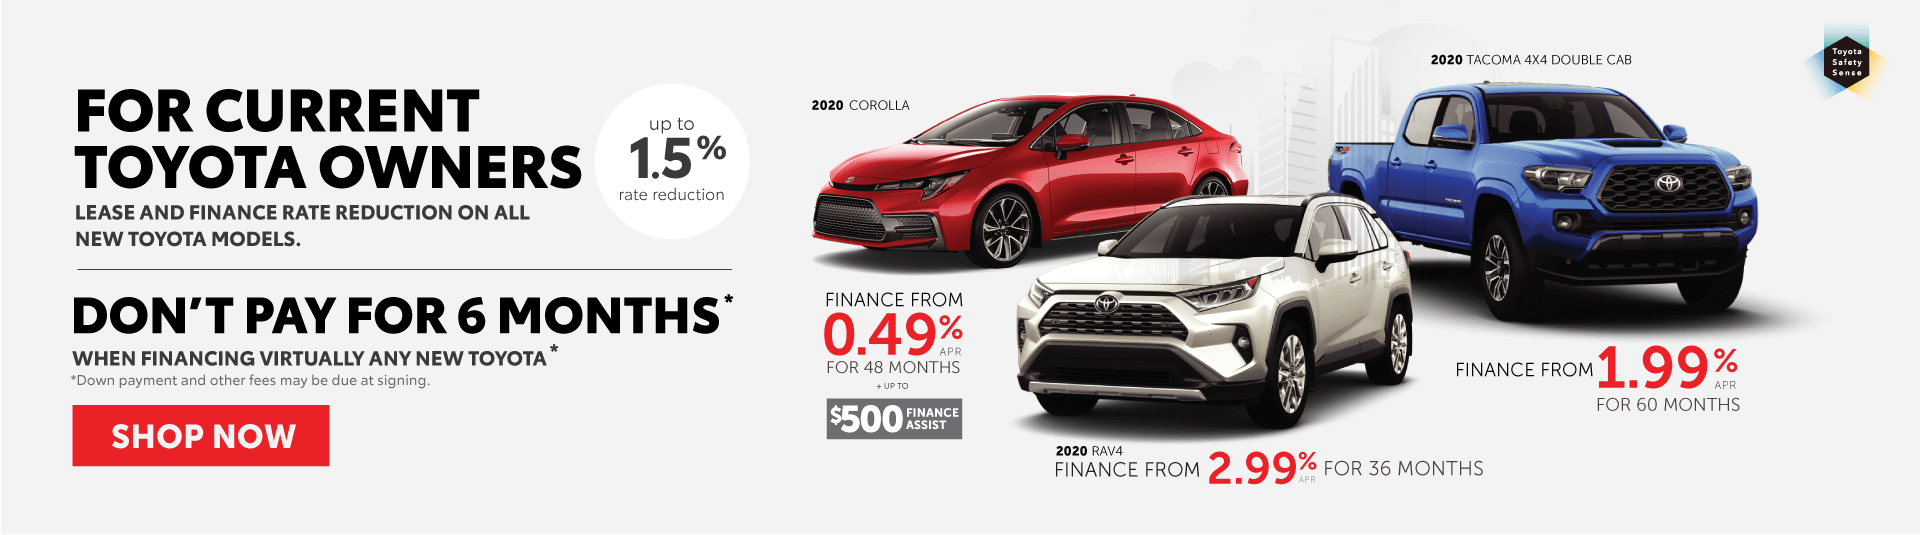 Toyota Offer -Don't pay for six months when you buy a new Toyota